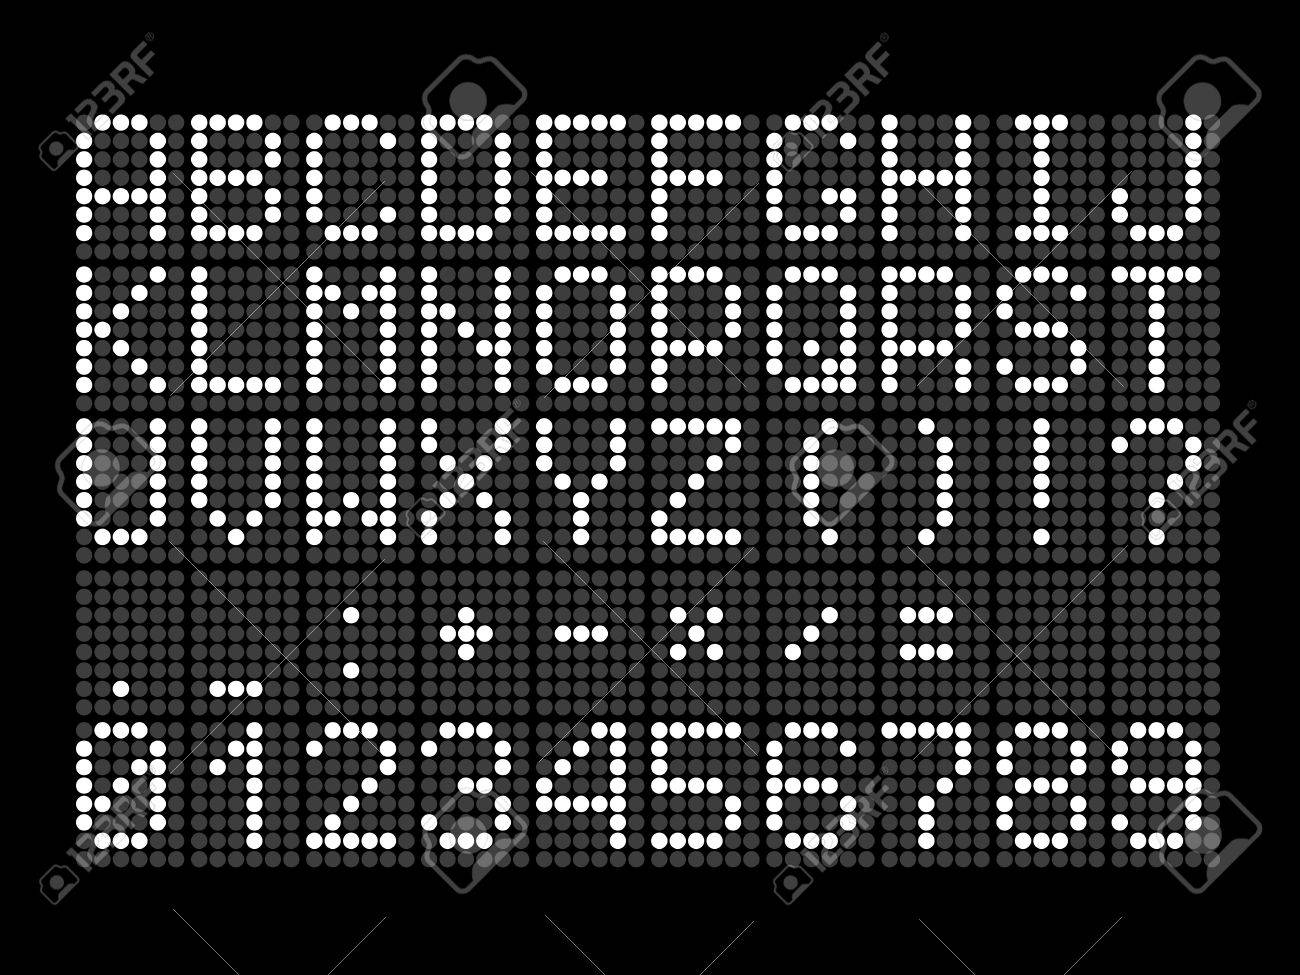 Digital dotted font with letters, numbers, mathematical symbols